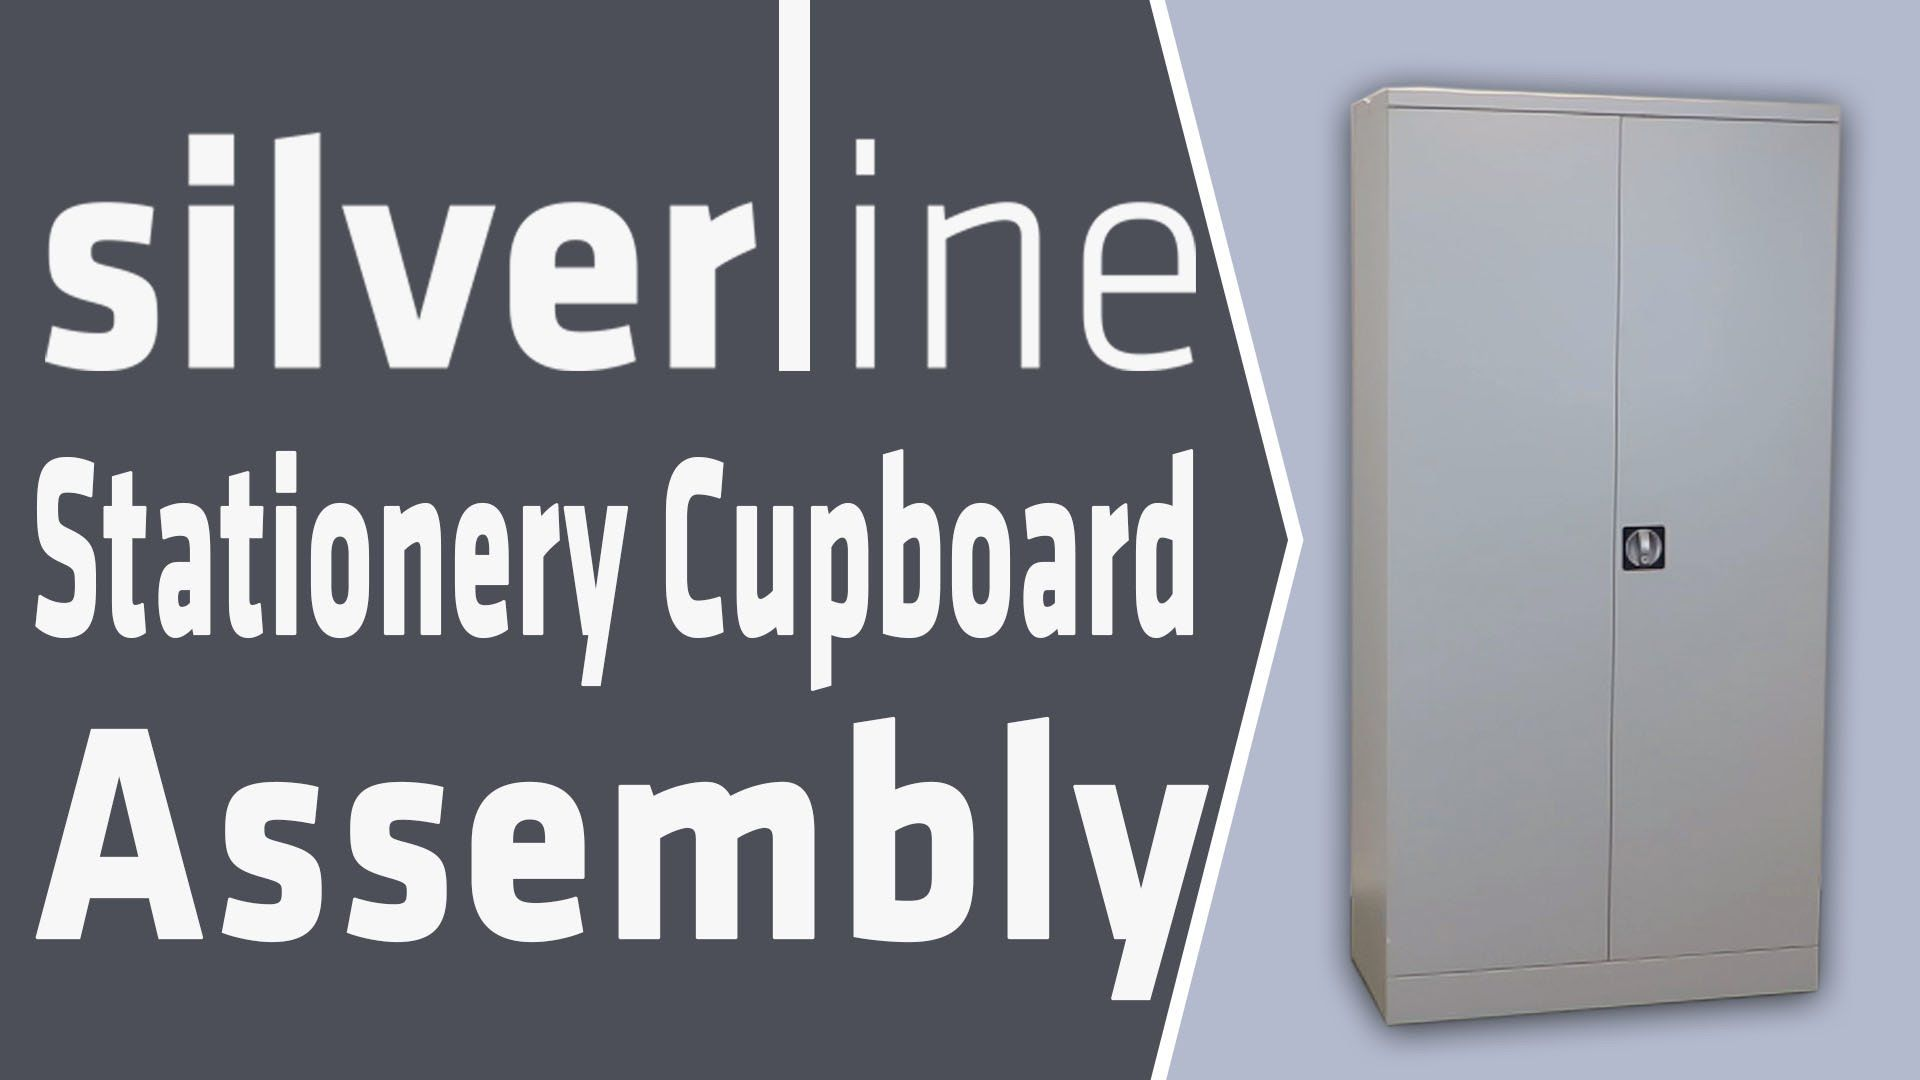 Silverline Office Furniture Assemby Instructions - How To Assemble Metal...